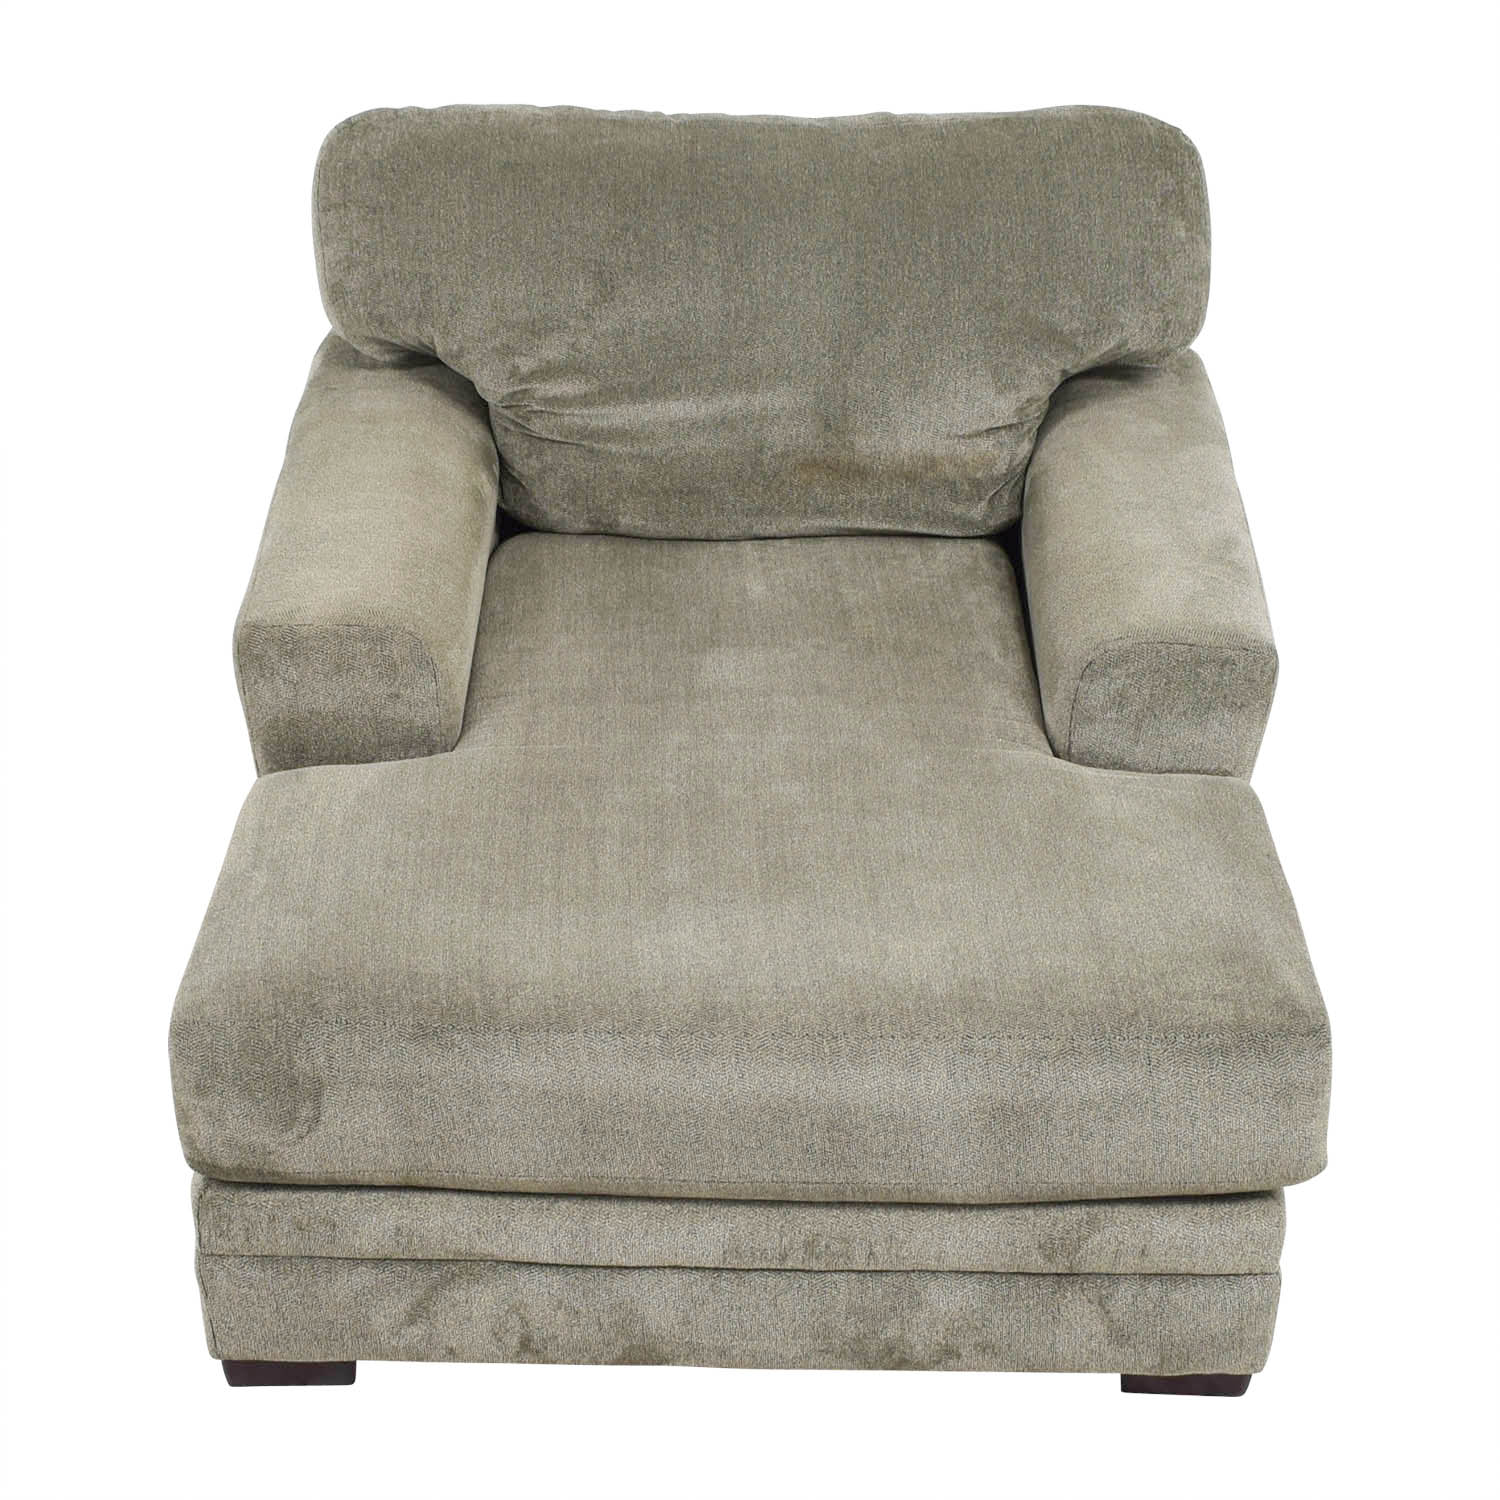 shop Bobs Furniture Grey Chaise Lounge Bobs Furniture